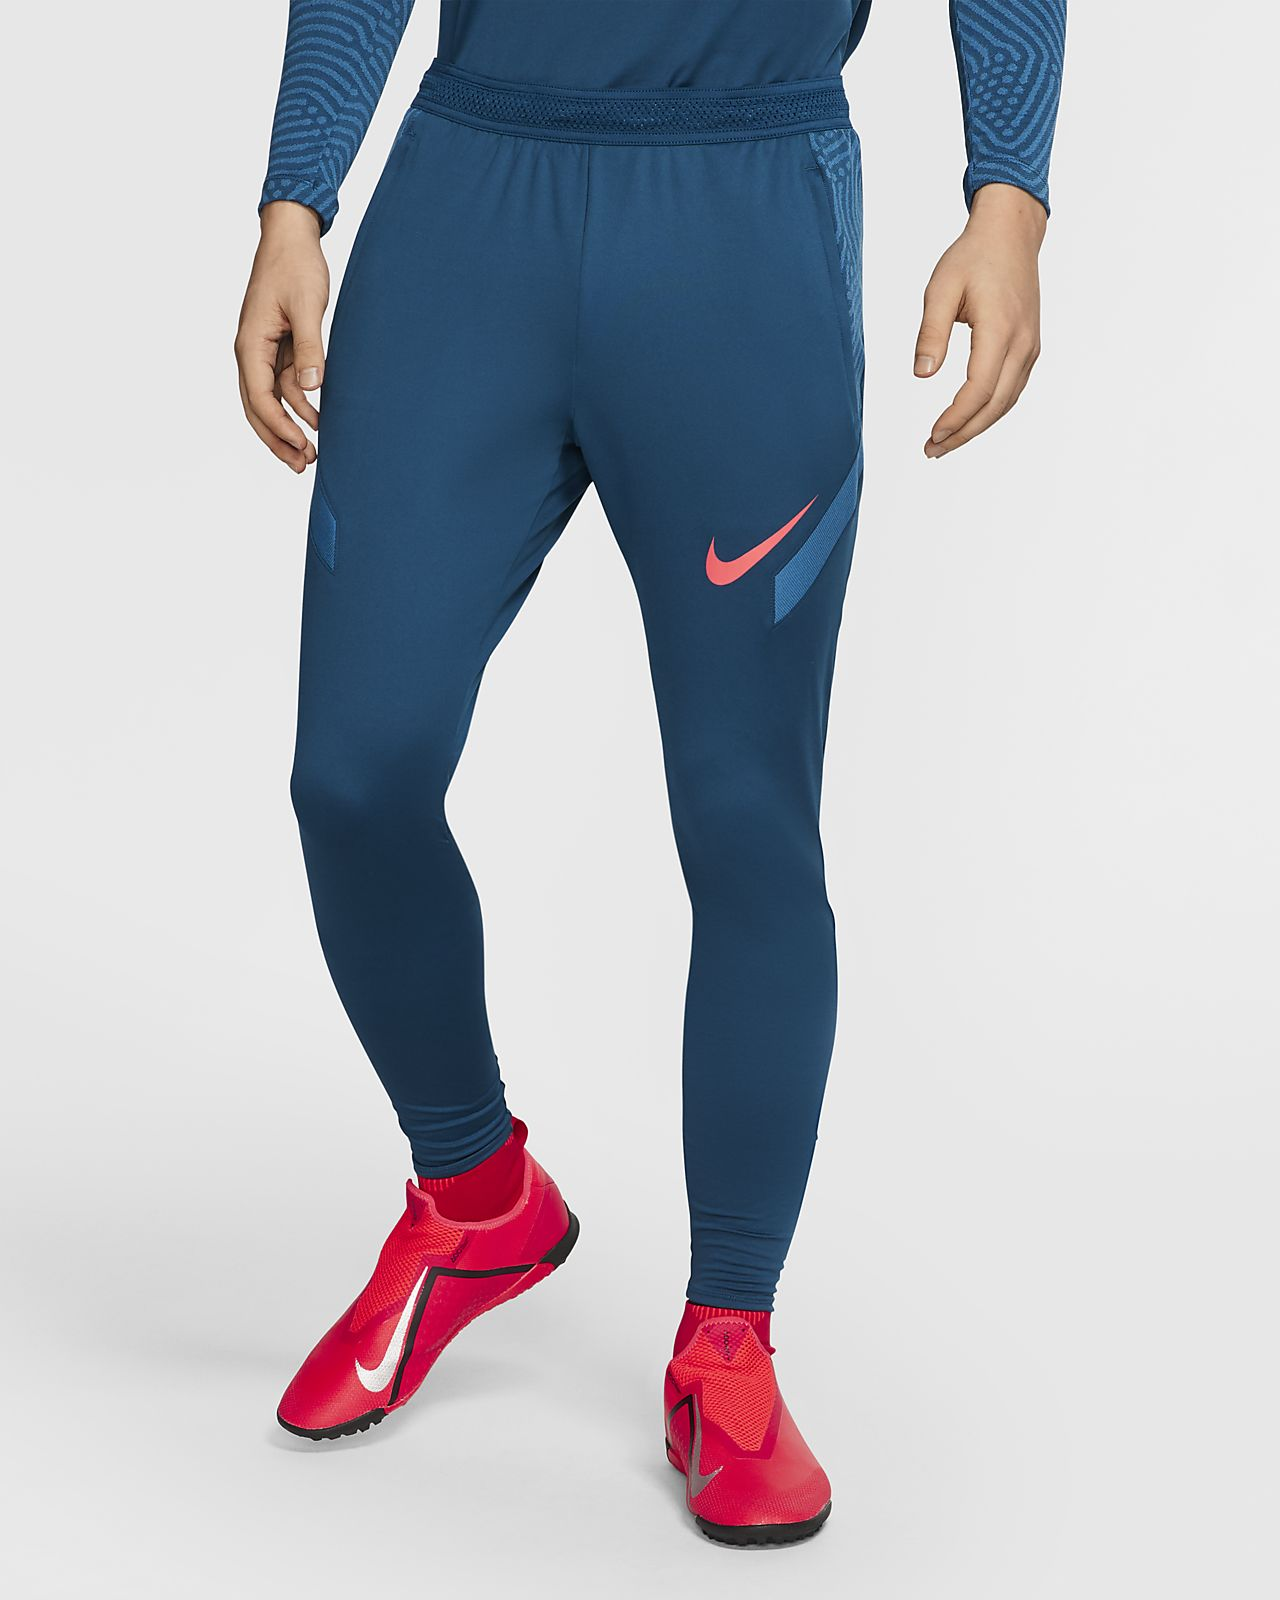 Nike Dri-FIT Strike Men's Football Pants